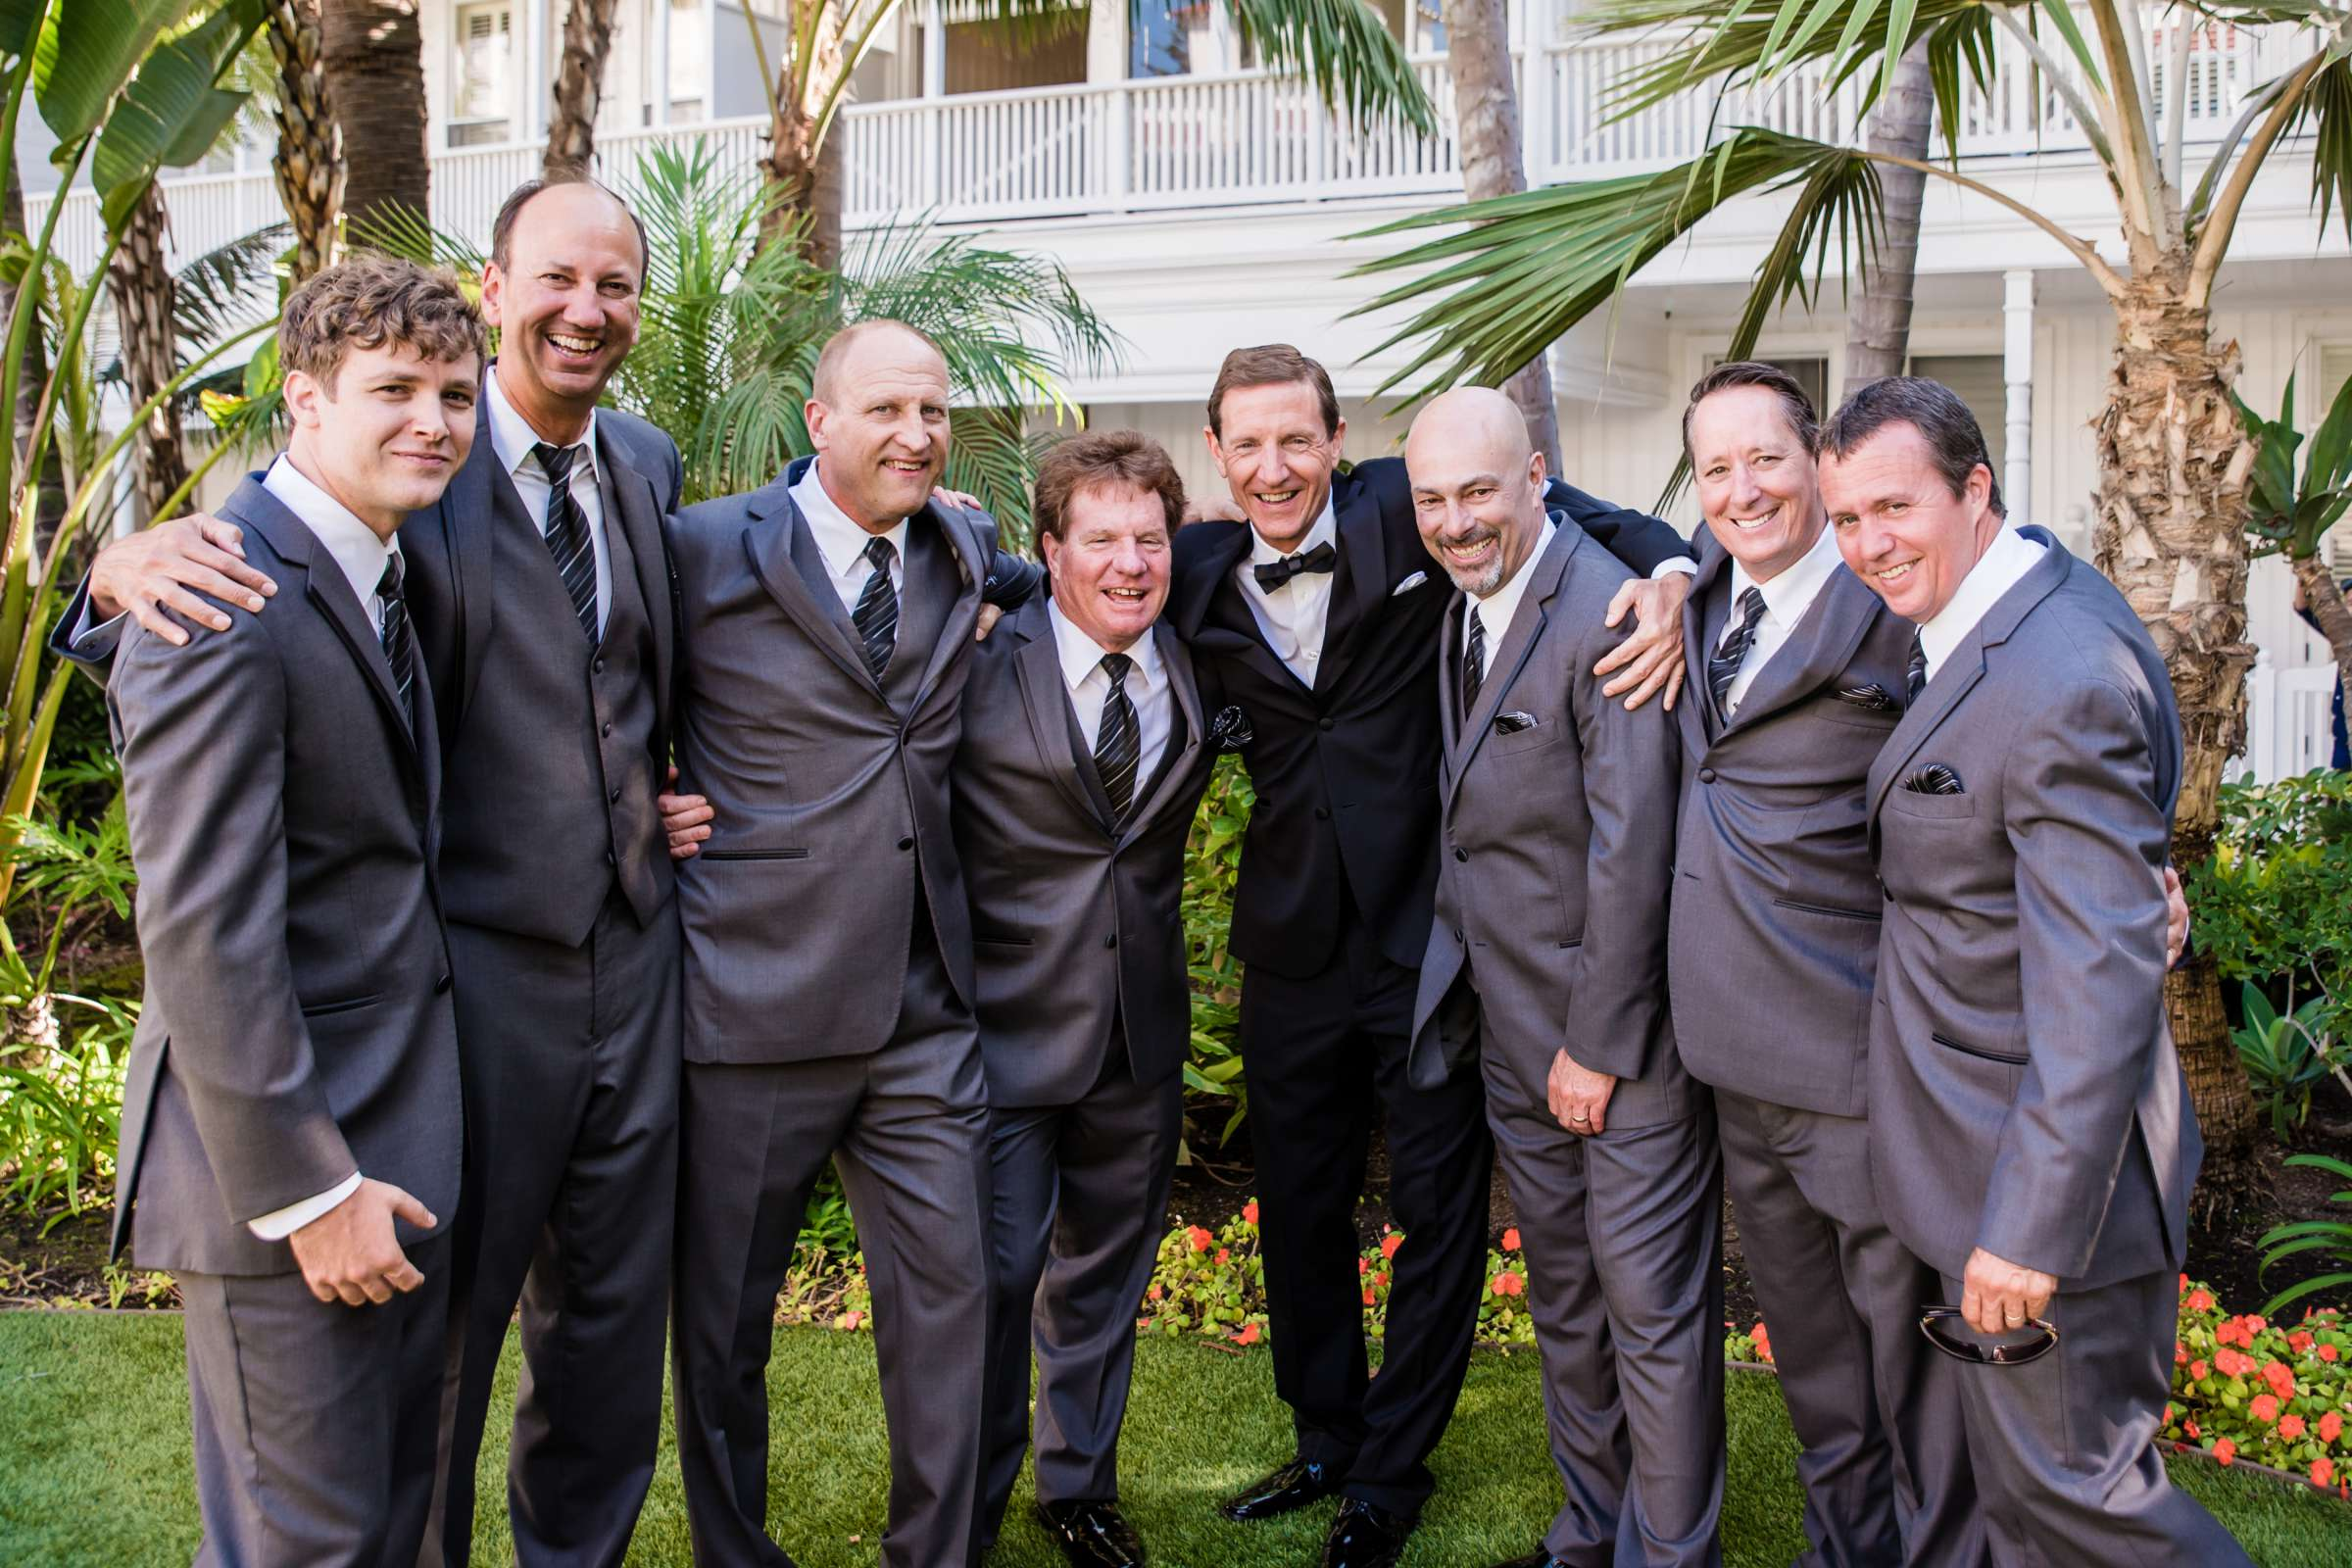 Hotel Del Coronado Wedding coordinated by Creative Affairs Inc, Diane and Paul Wedding Photo #11 by True Photography